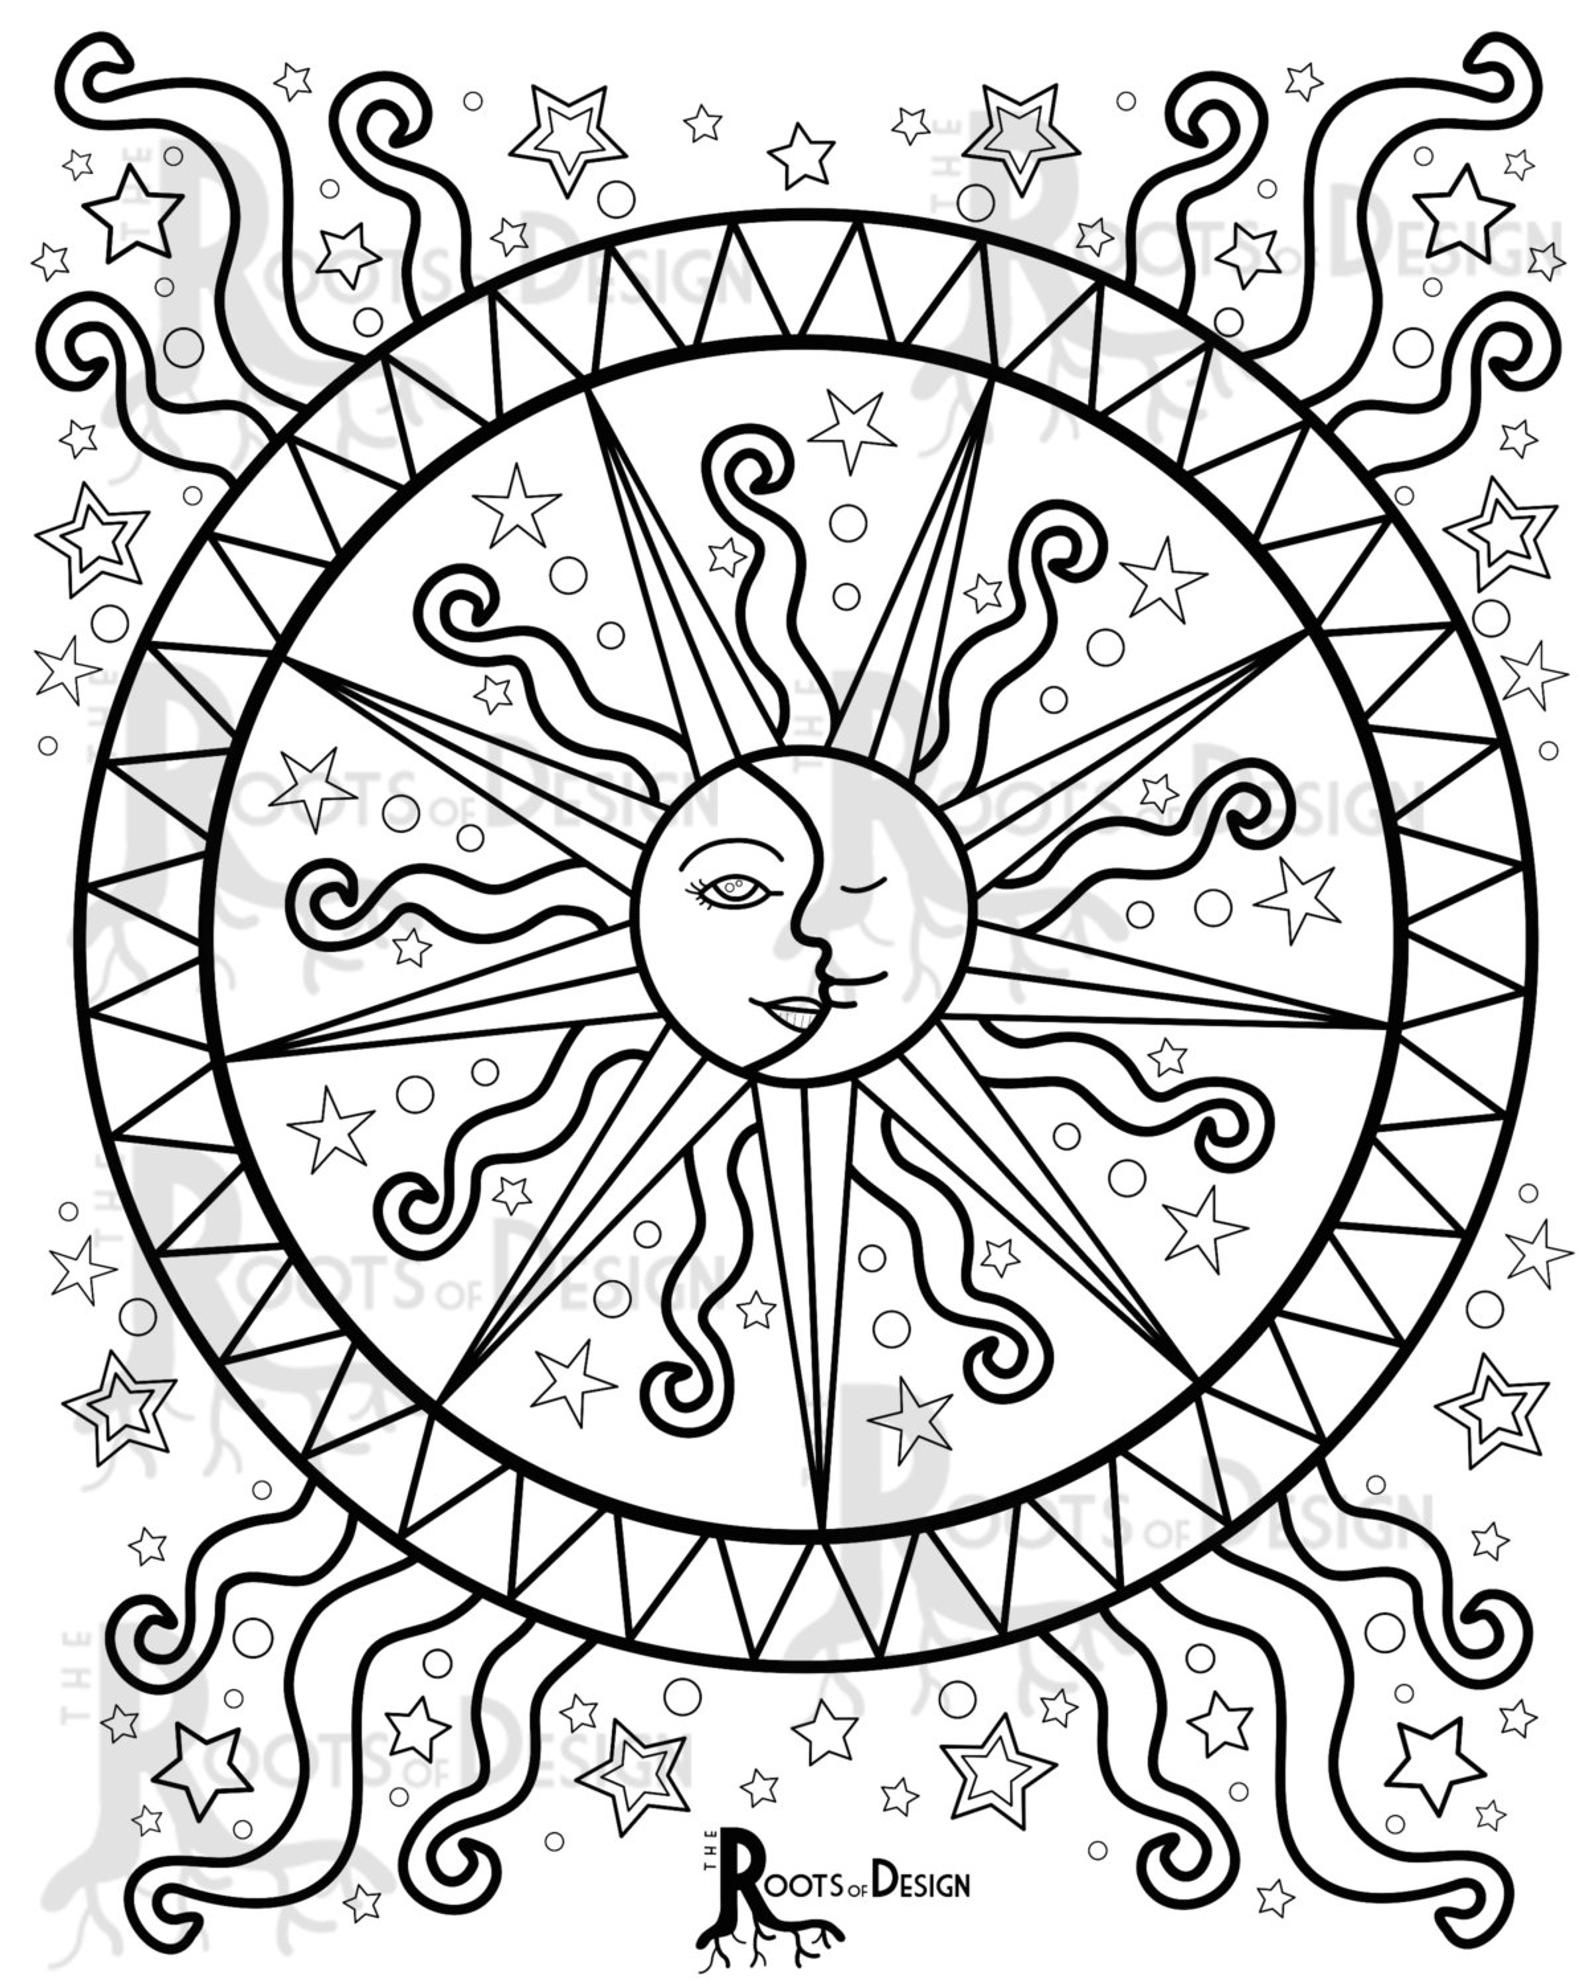 INSTANT DOWNLOAD Coloring Page Celestial Mandala Design  Etsy